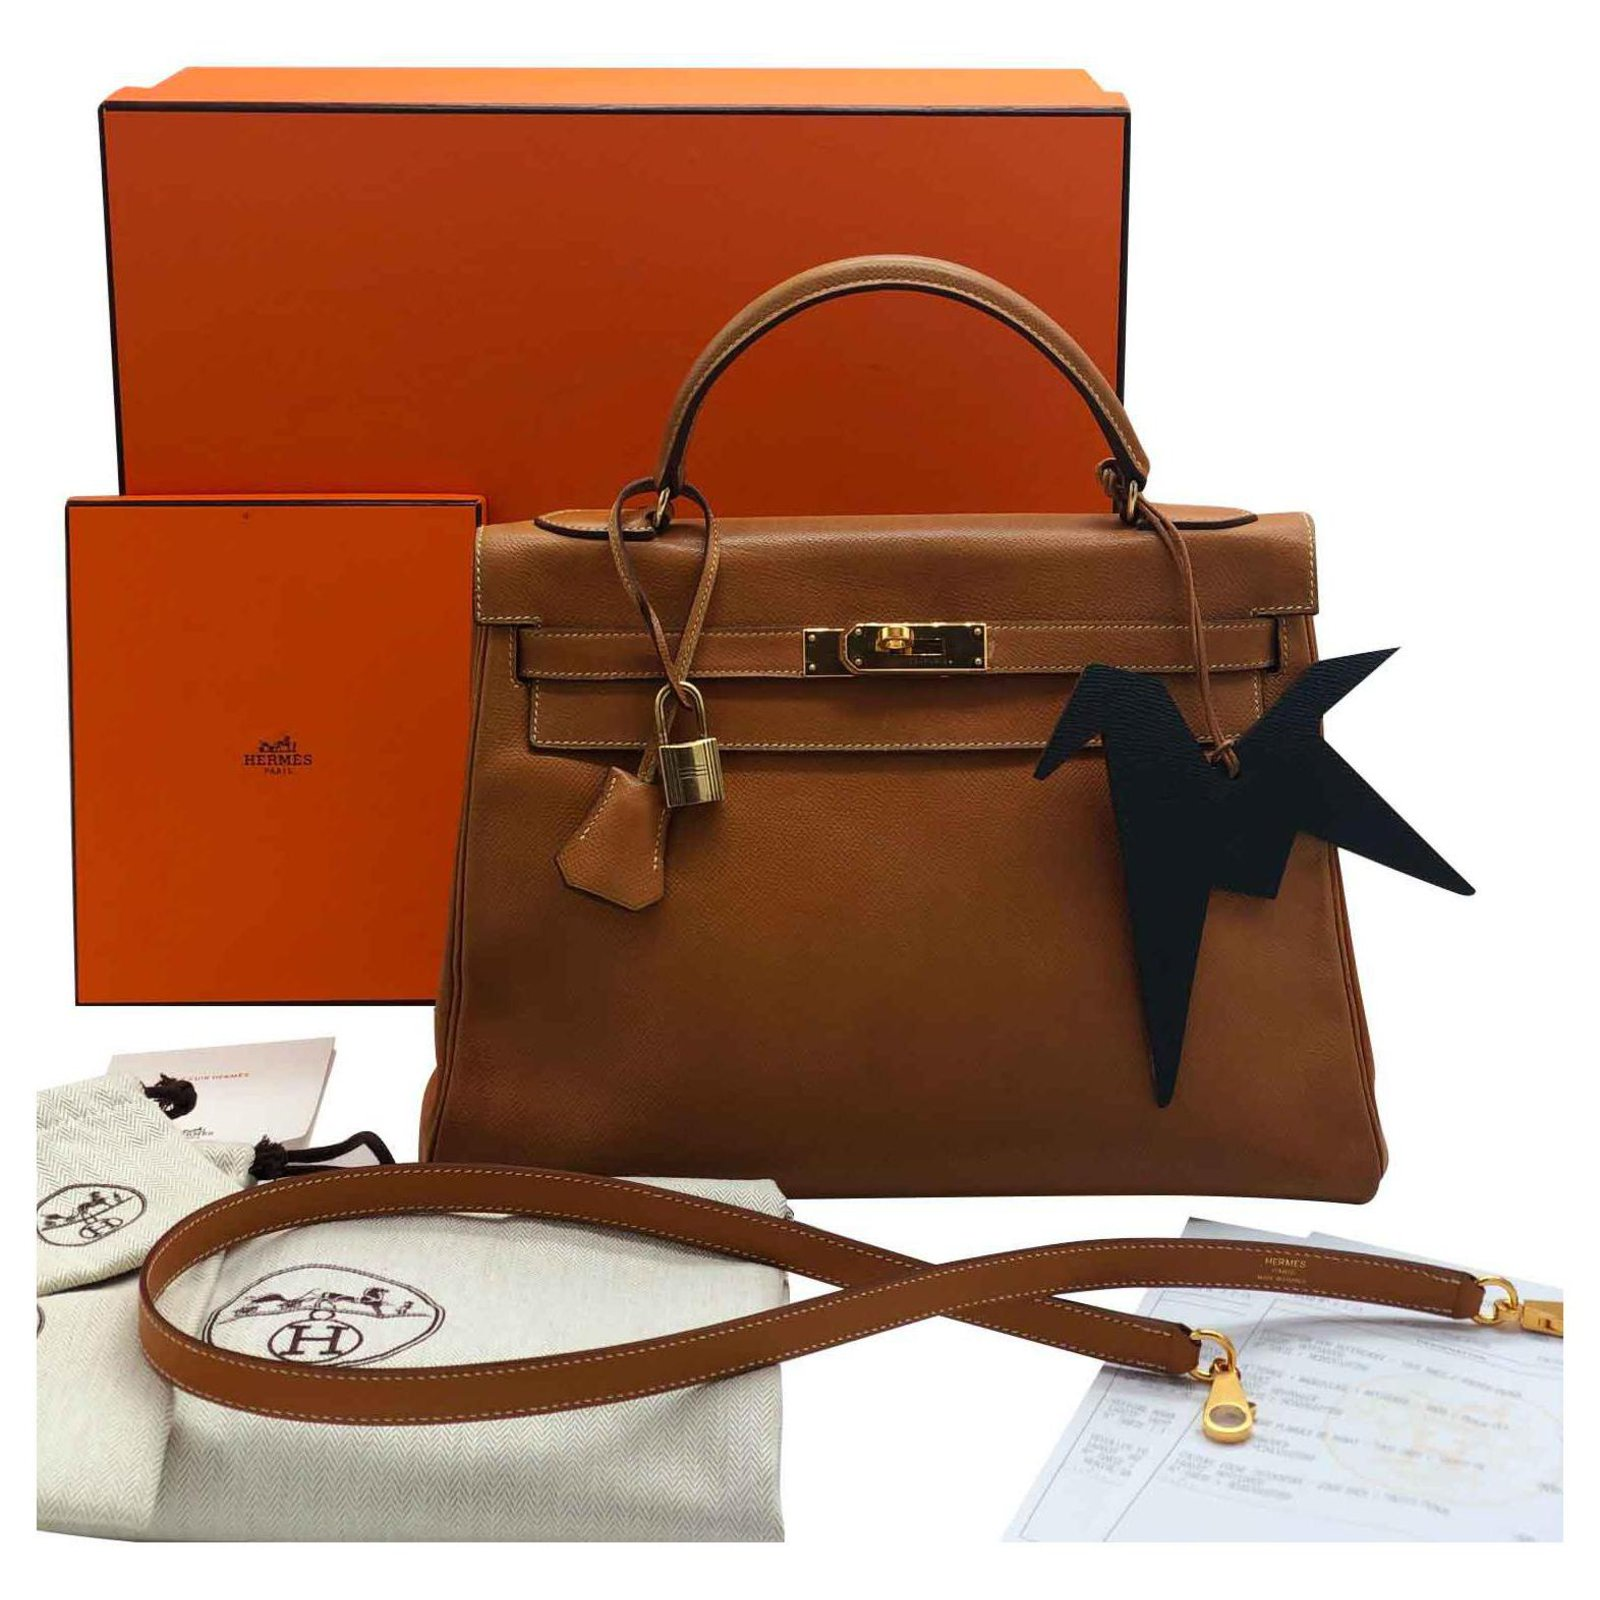 c2636734a3ae Hermès hermes kelly 32 cm in leather courchevel gold bag Handbags Leather  Caramel ref.121605